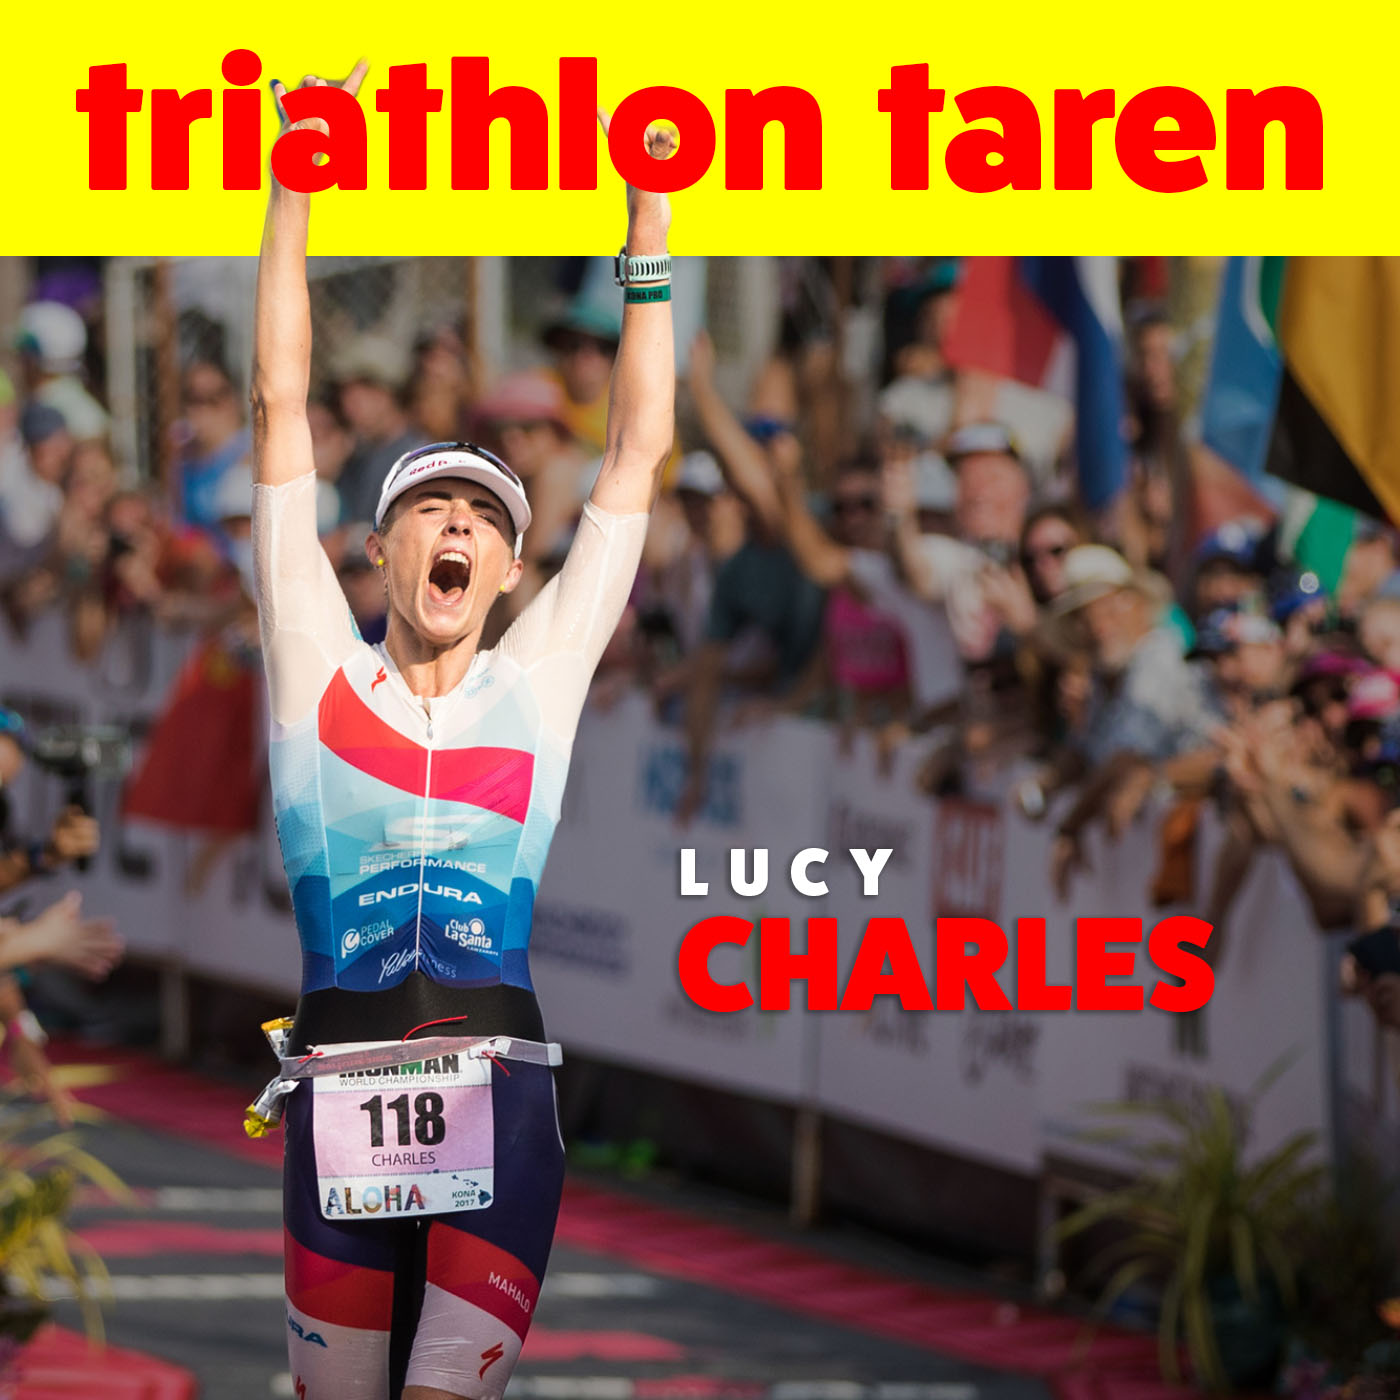 Lucy Charles | The next great female triathlete, could she win Kona in 2018?